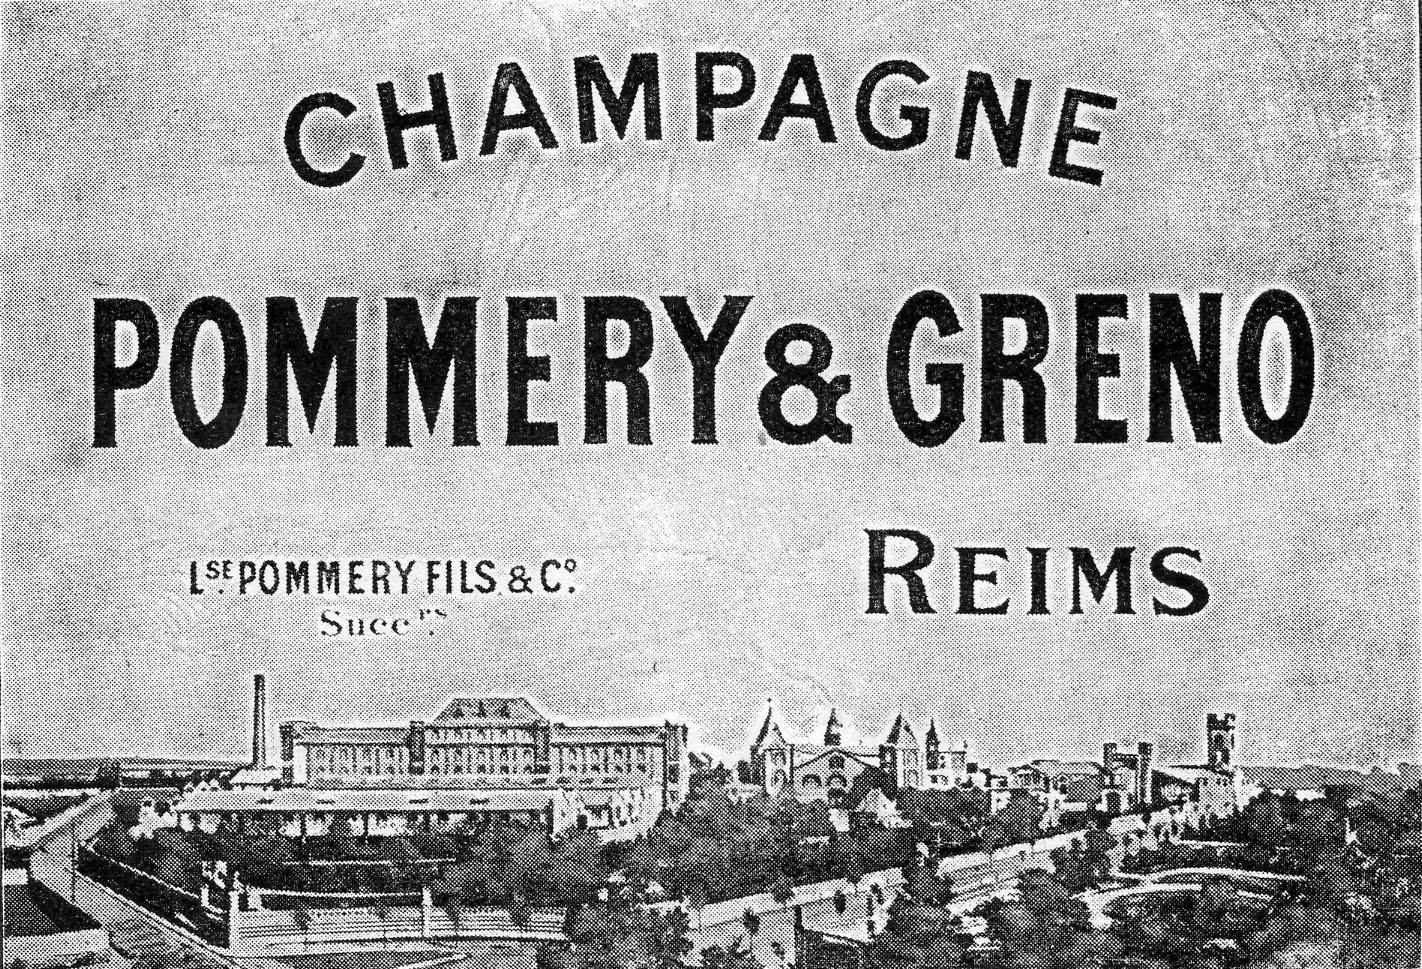 old ads are funny 1923 ad champagne pommery greno reims